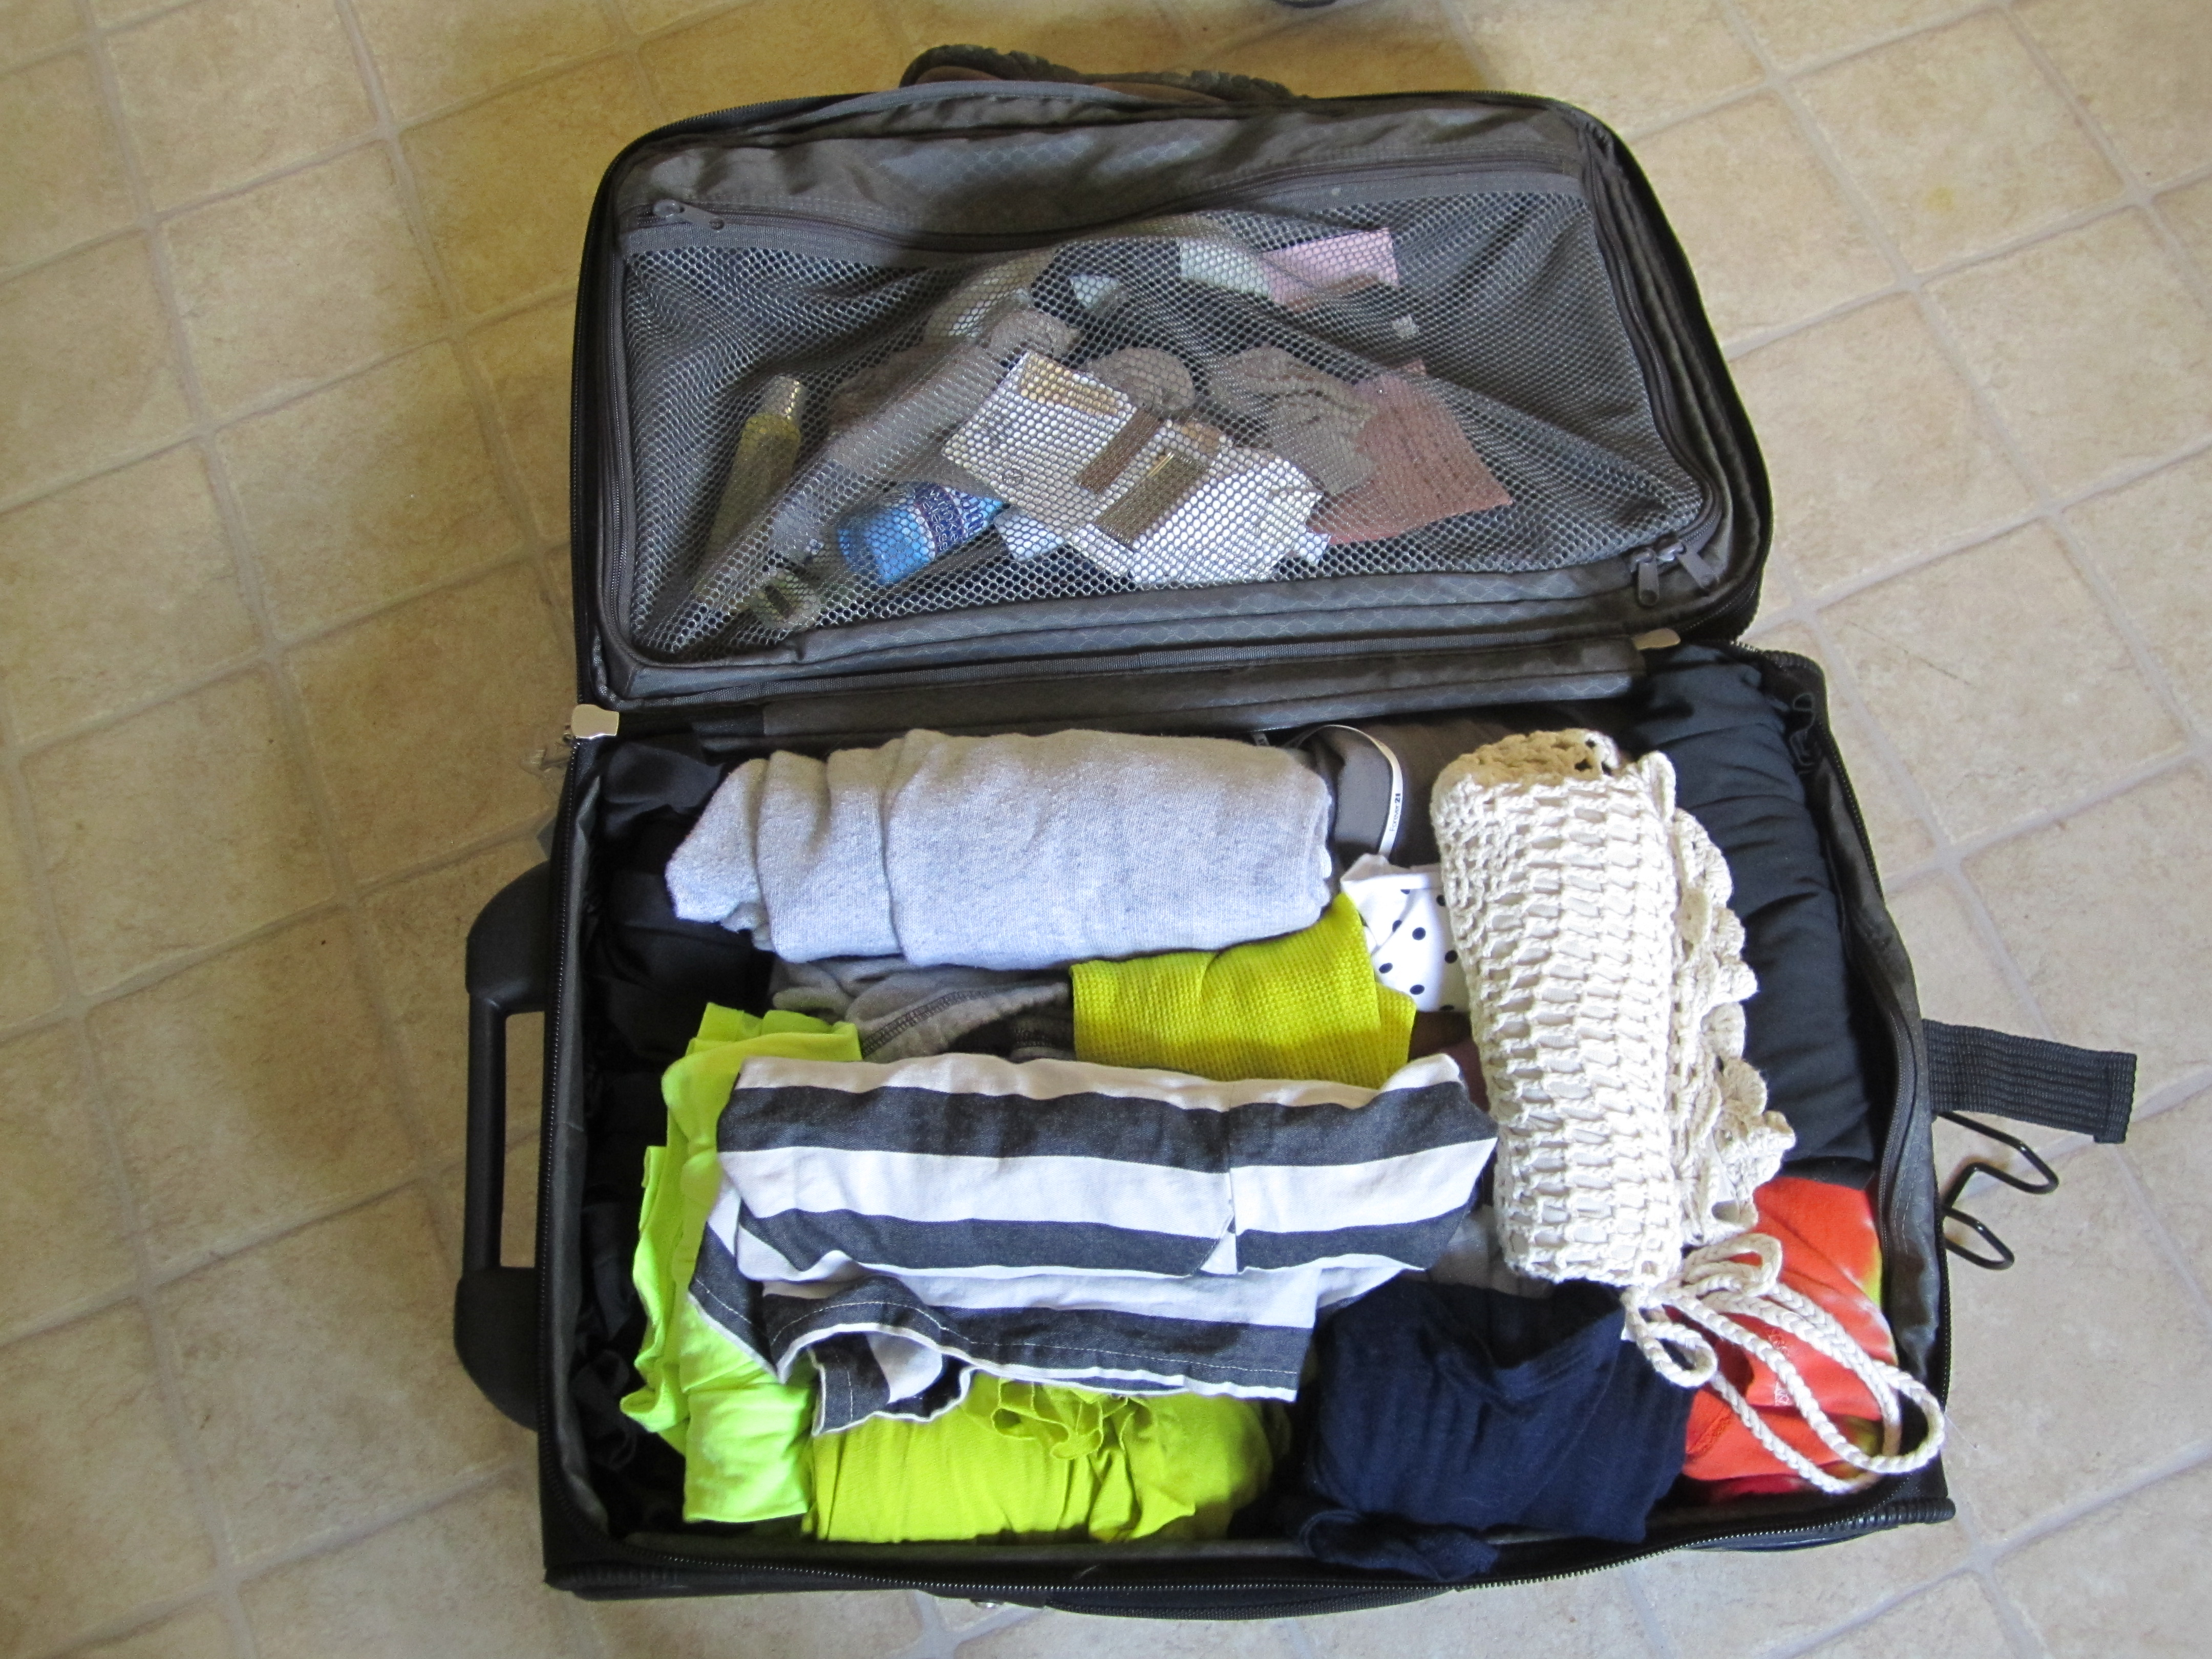 a humble snapshot of my packed rollerboard, which comes with me all around  the world